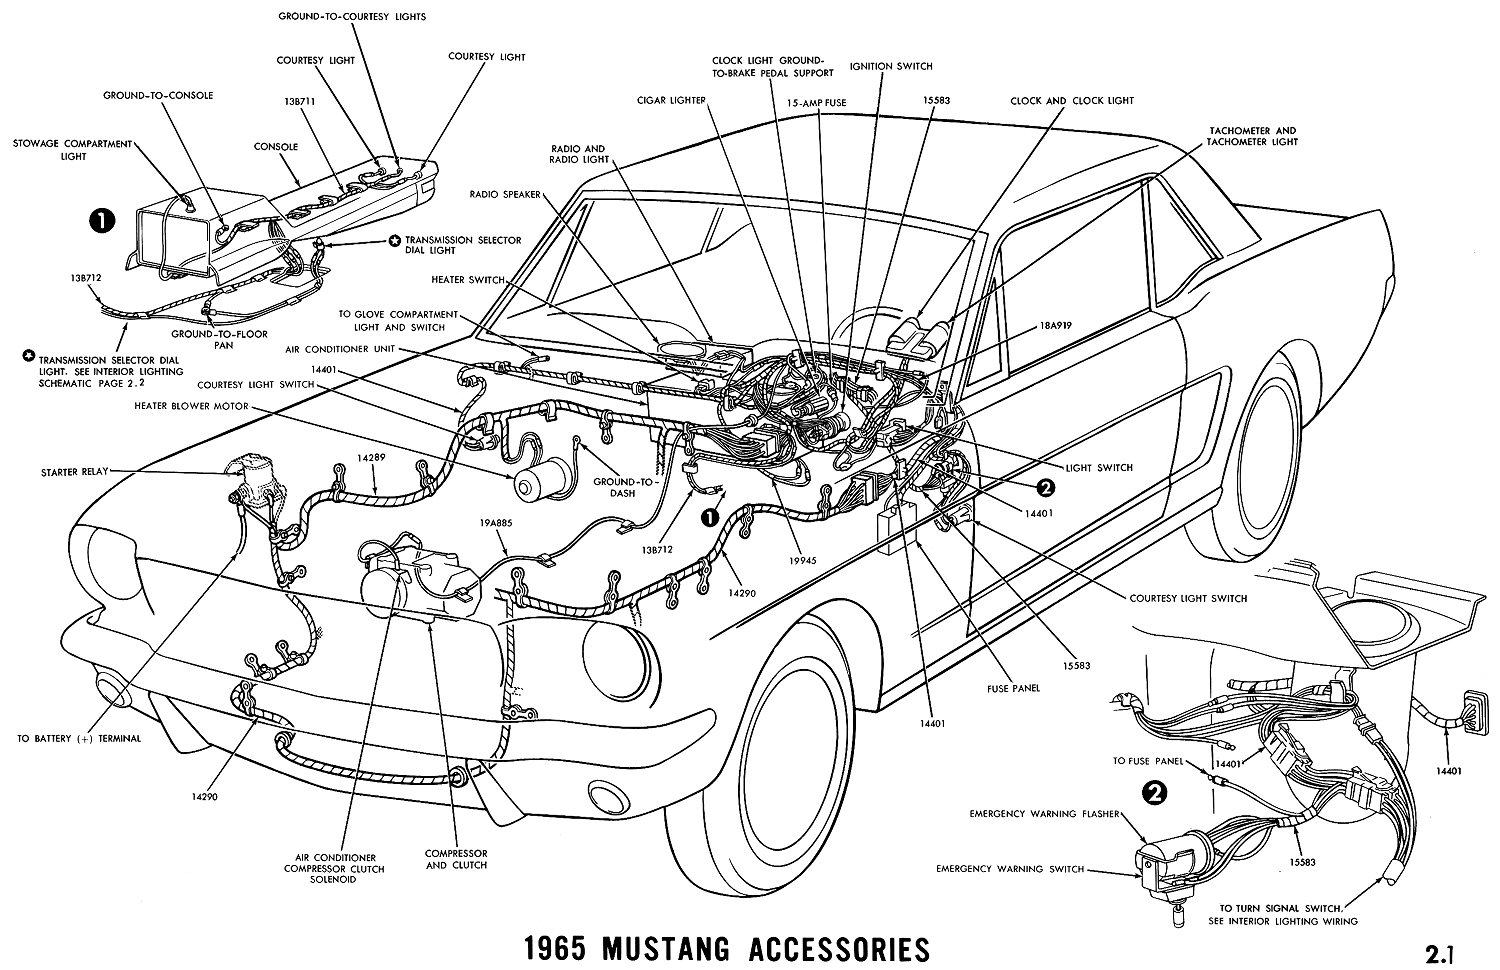 1965h 1965 mustang wiring diagrams average joe restoration 1965 mustang under dash wiring diagram at love-stories.co